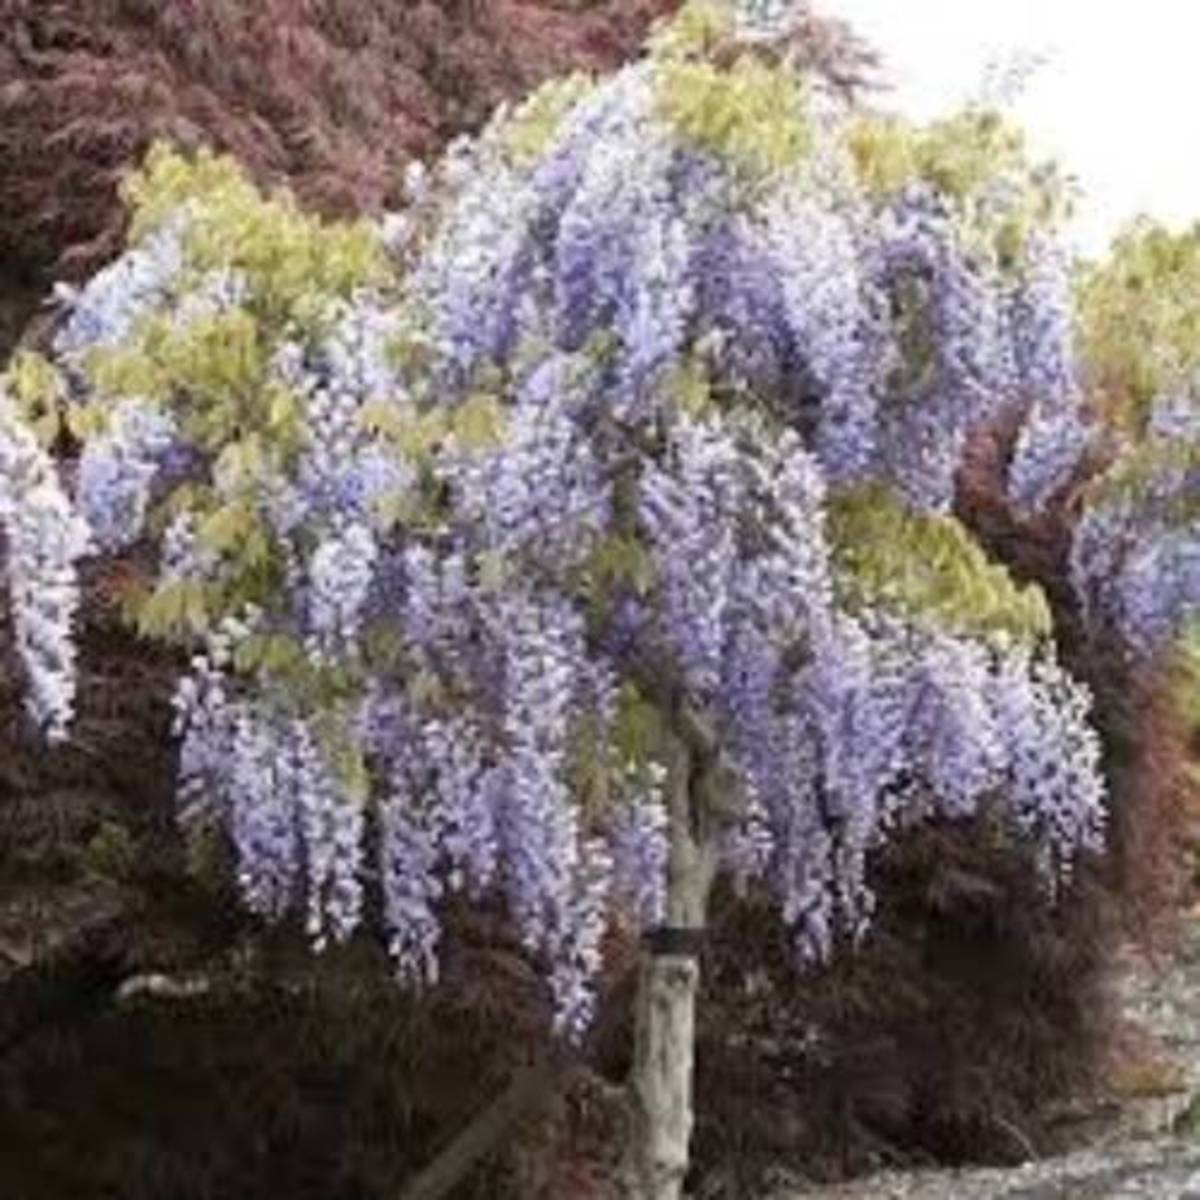 There is no more beautiful sight than a Wisteria Tree in full bloom. During the month of May, the tree is fully covered in purplish-blue flowers.